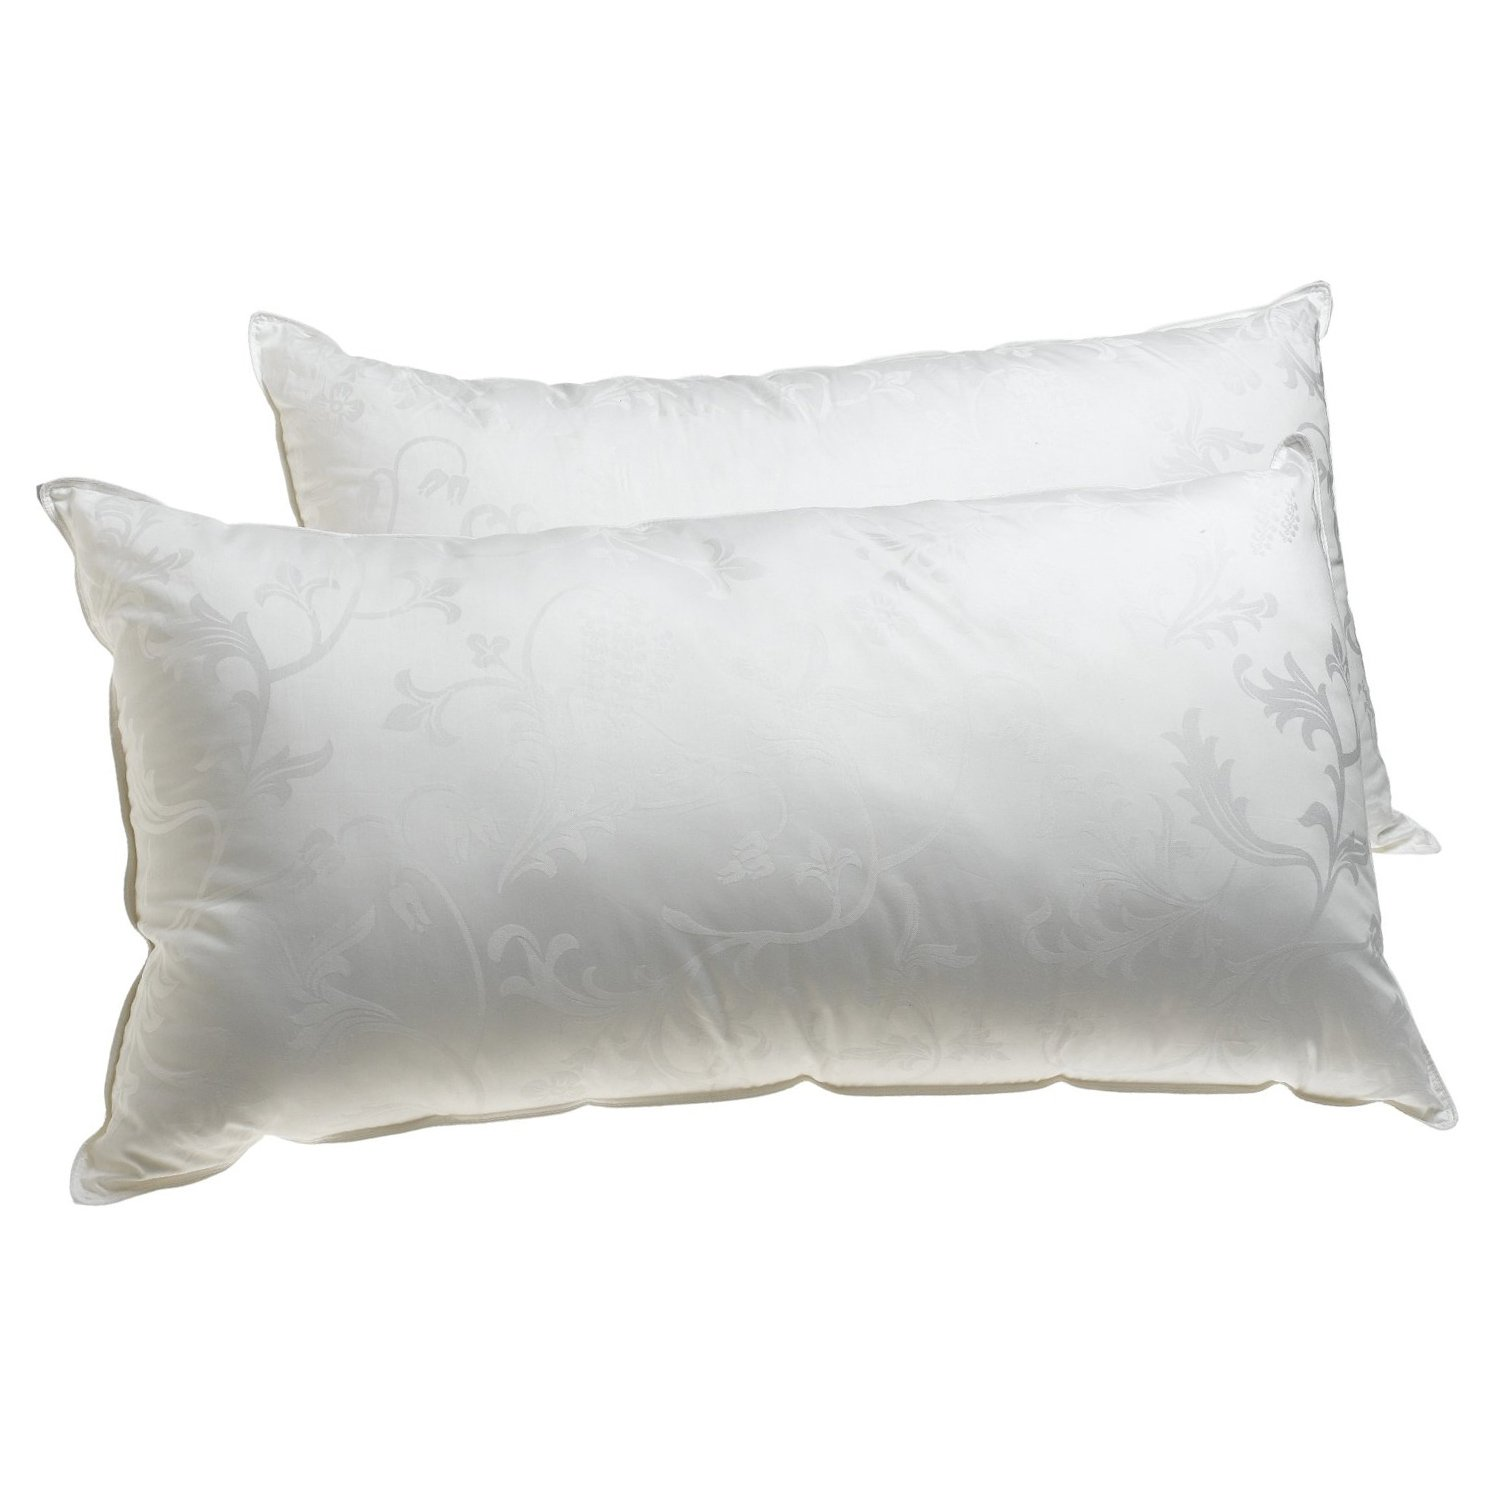 Deluxe Comfort DAP-001-01 Down Alternative Allergy Free Pillow, Queen Living Healthy Products